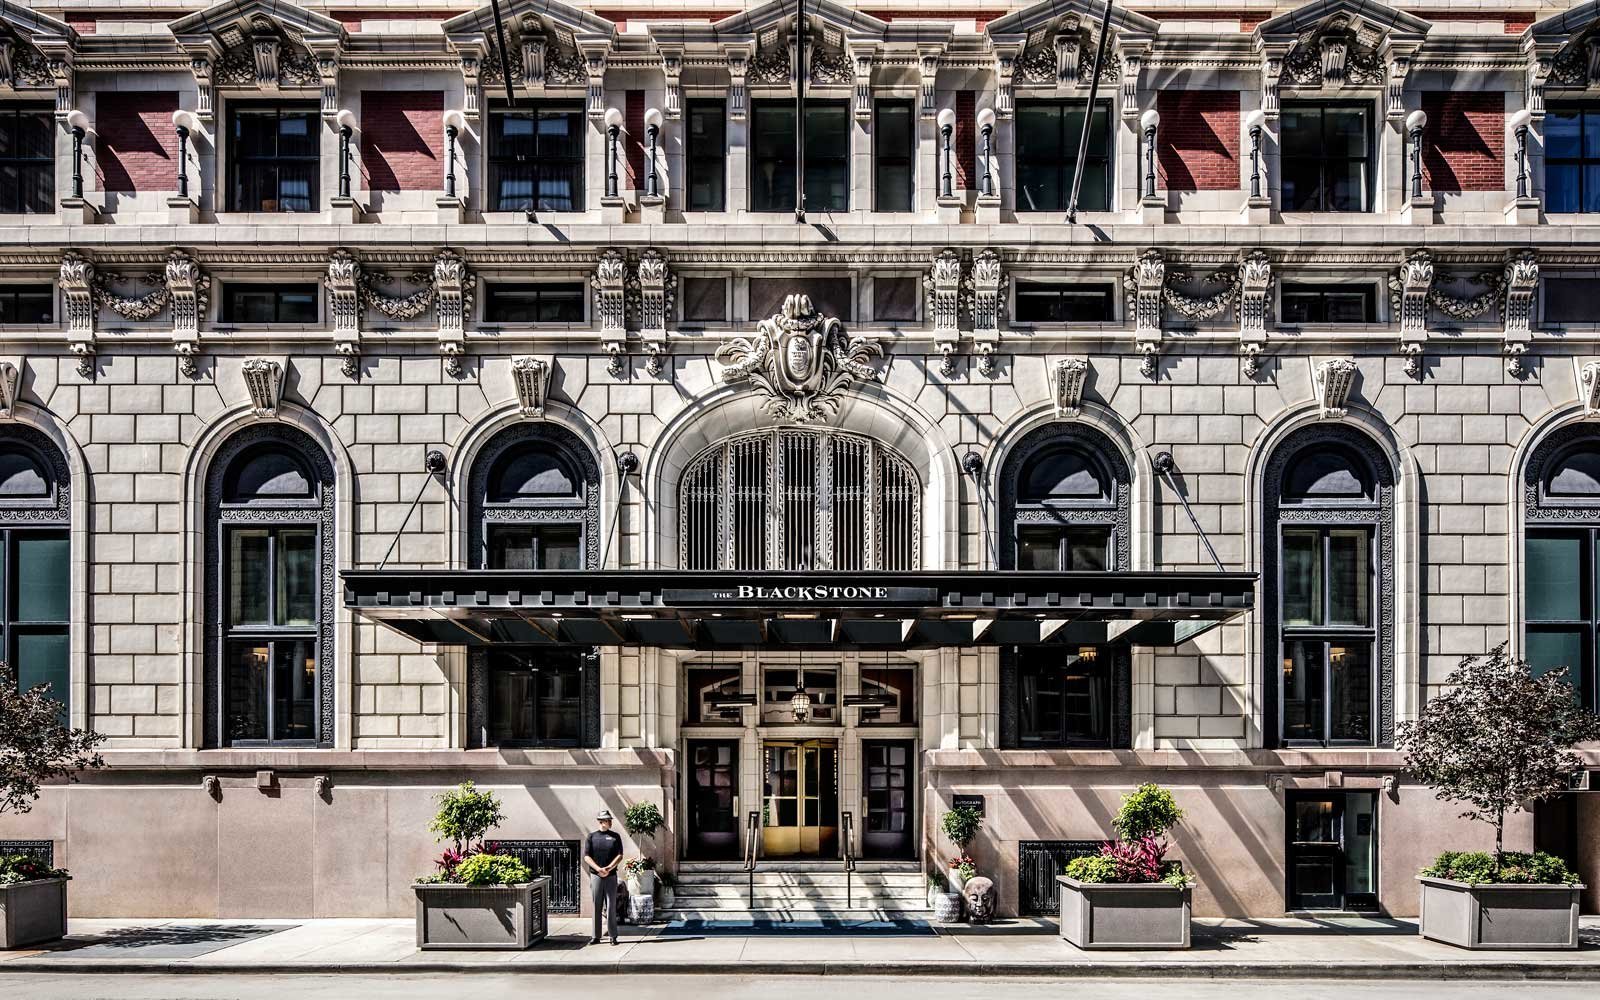 Exterior of Chicago's Blackstone Hotel